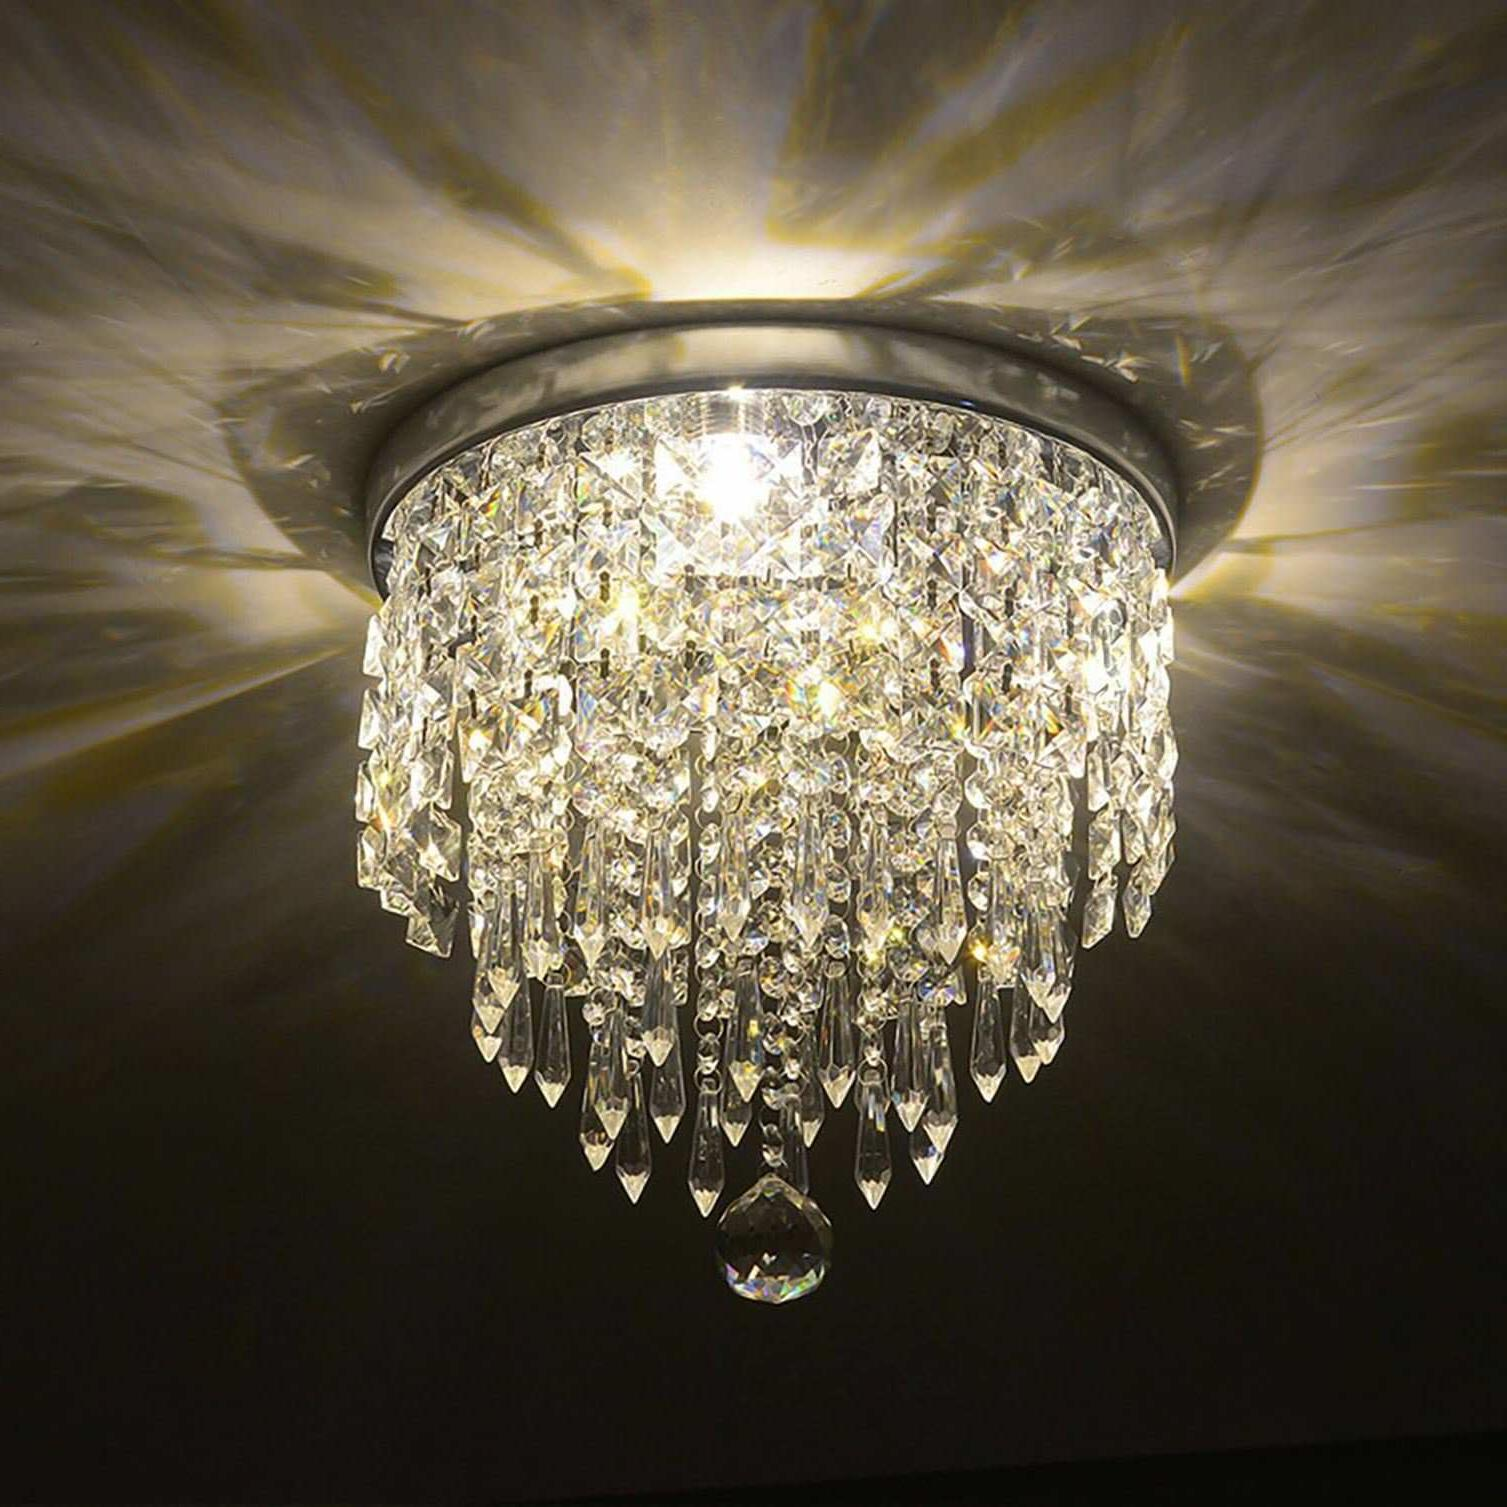 pendant ceiling lamp crystal ball fixture light